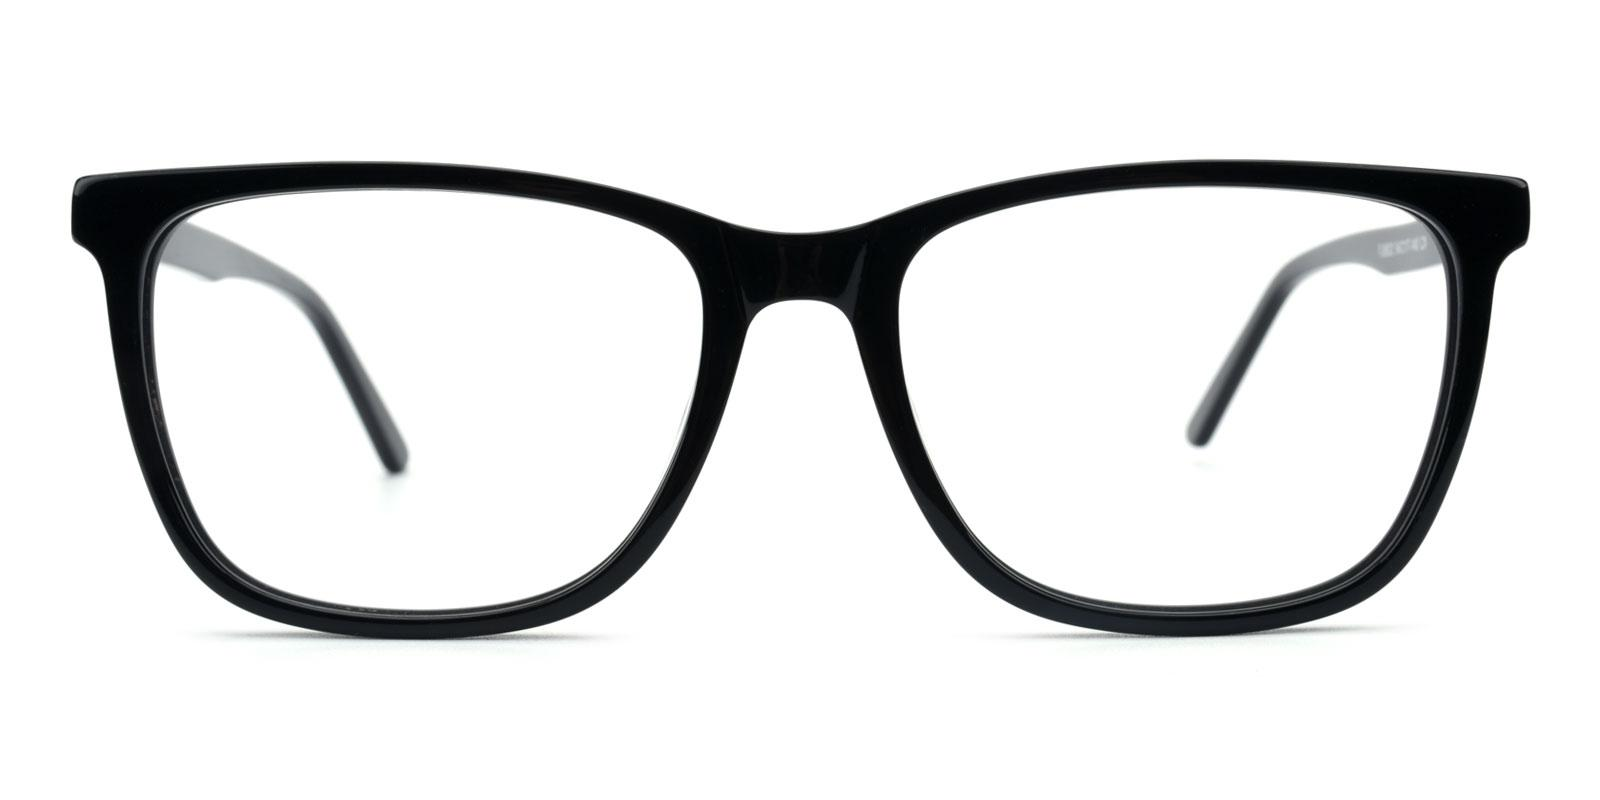 Genter-Black-Square-Acetate-Eyeglasses-additional2